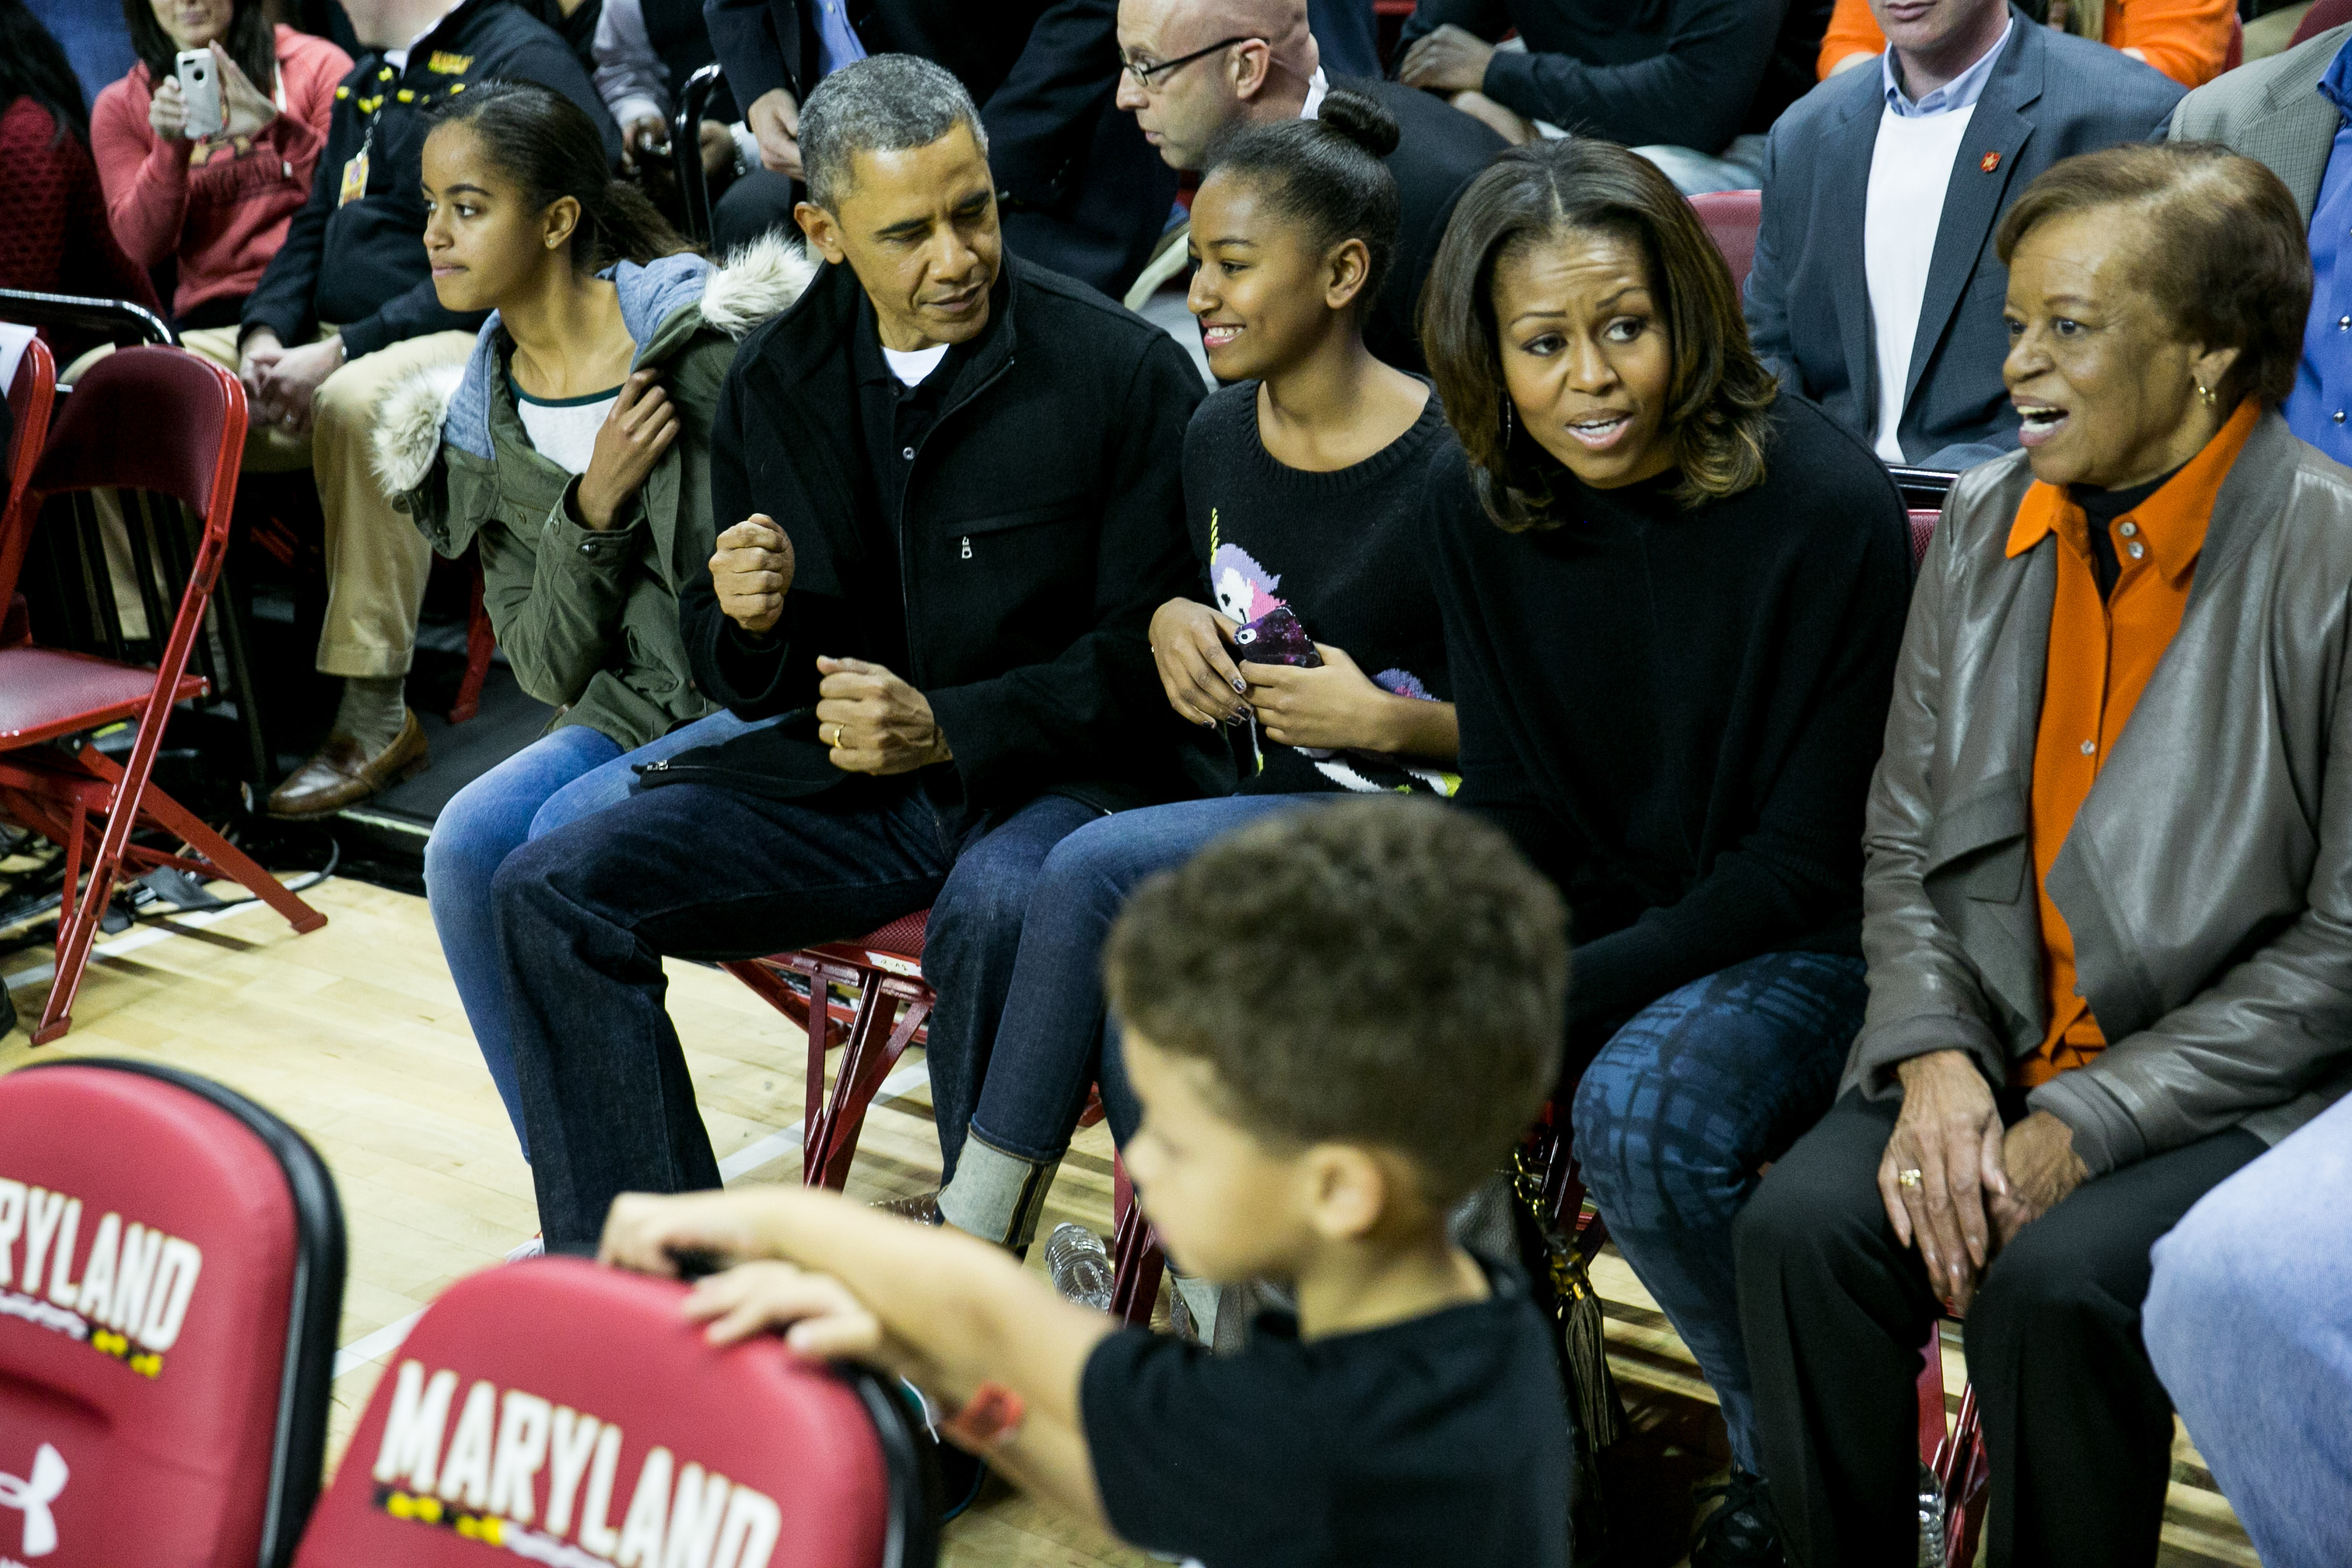 U.S. President Barack Obama, daughters Malia Obama and Sasha Obama, First Lady Michelle Obama and Marian Robinson (R) attend a men's NCCA basketball game between the University of Maryland and Oregon State University, November 17, 2013, at Comcast Center in College Park, Maryland. (Photo by Drew Angerer/Getty Images)